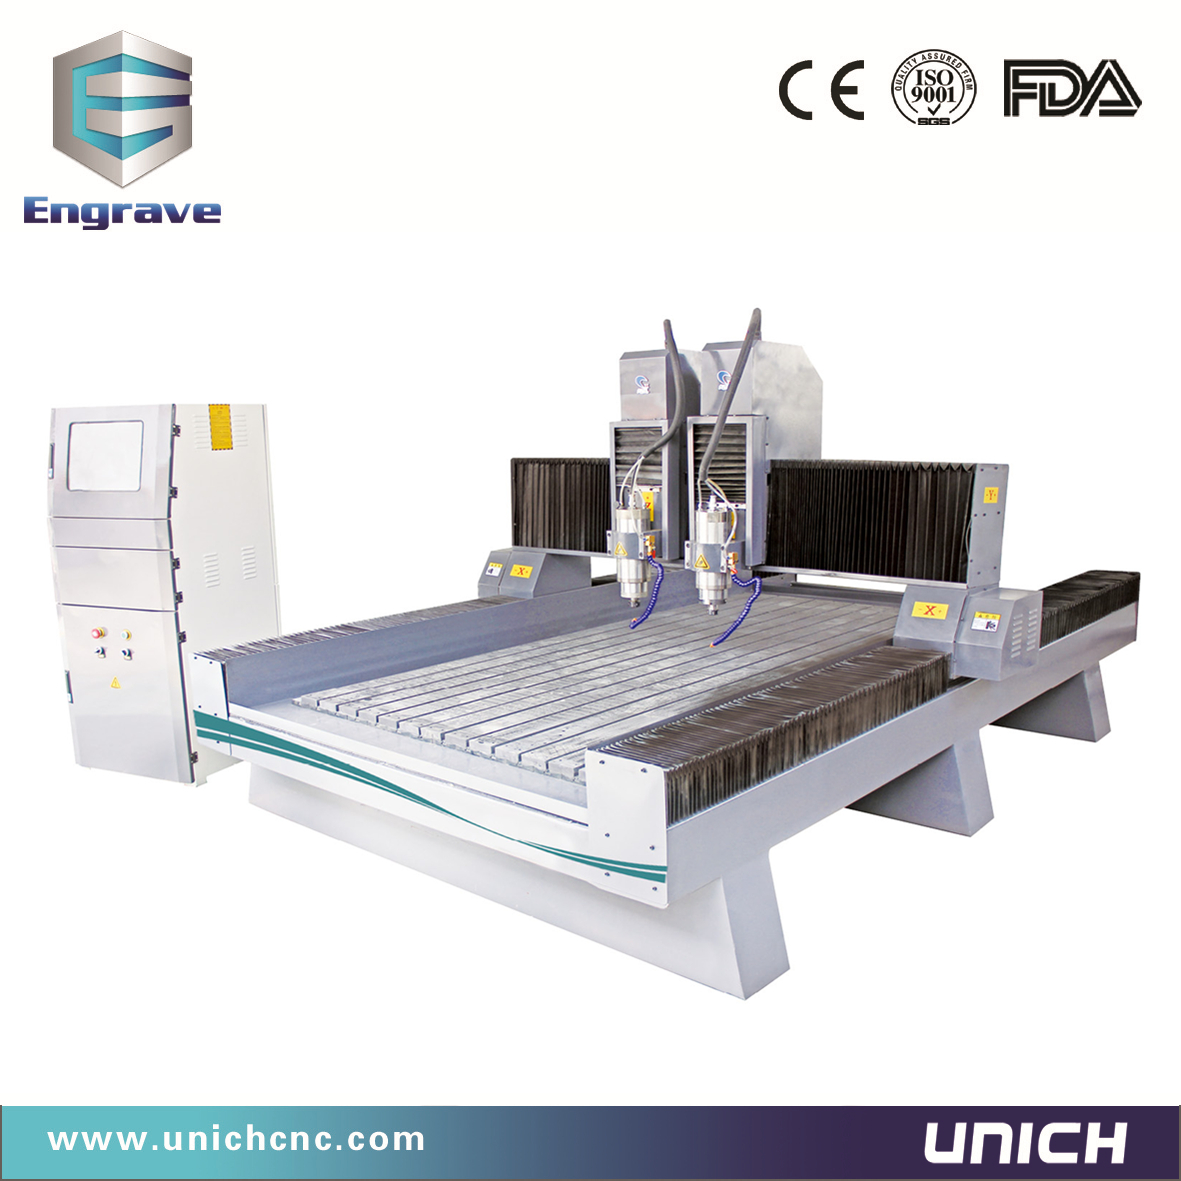 Unich 1300x2500mm CNC Stone Router